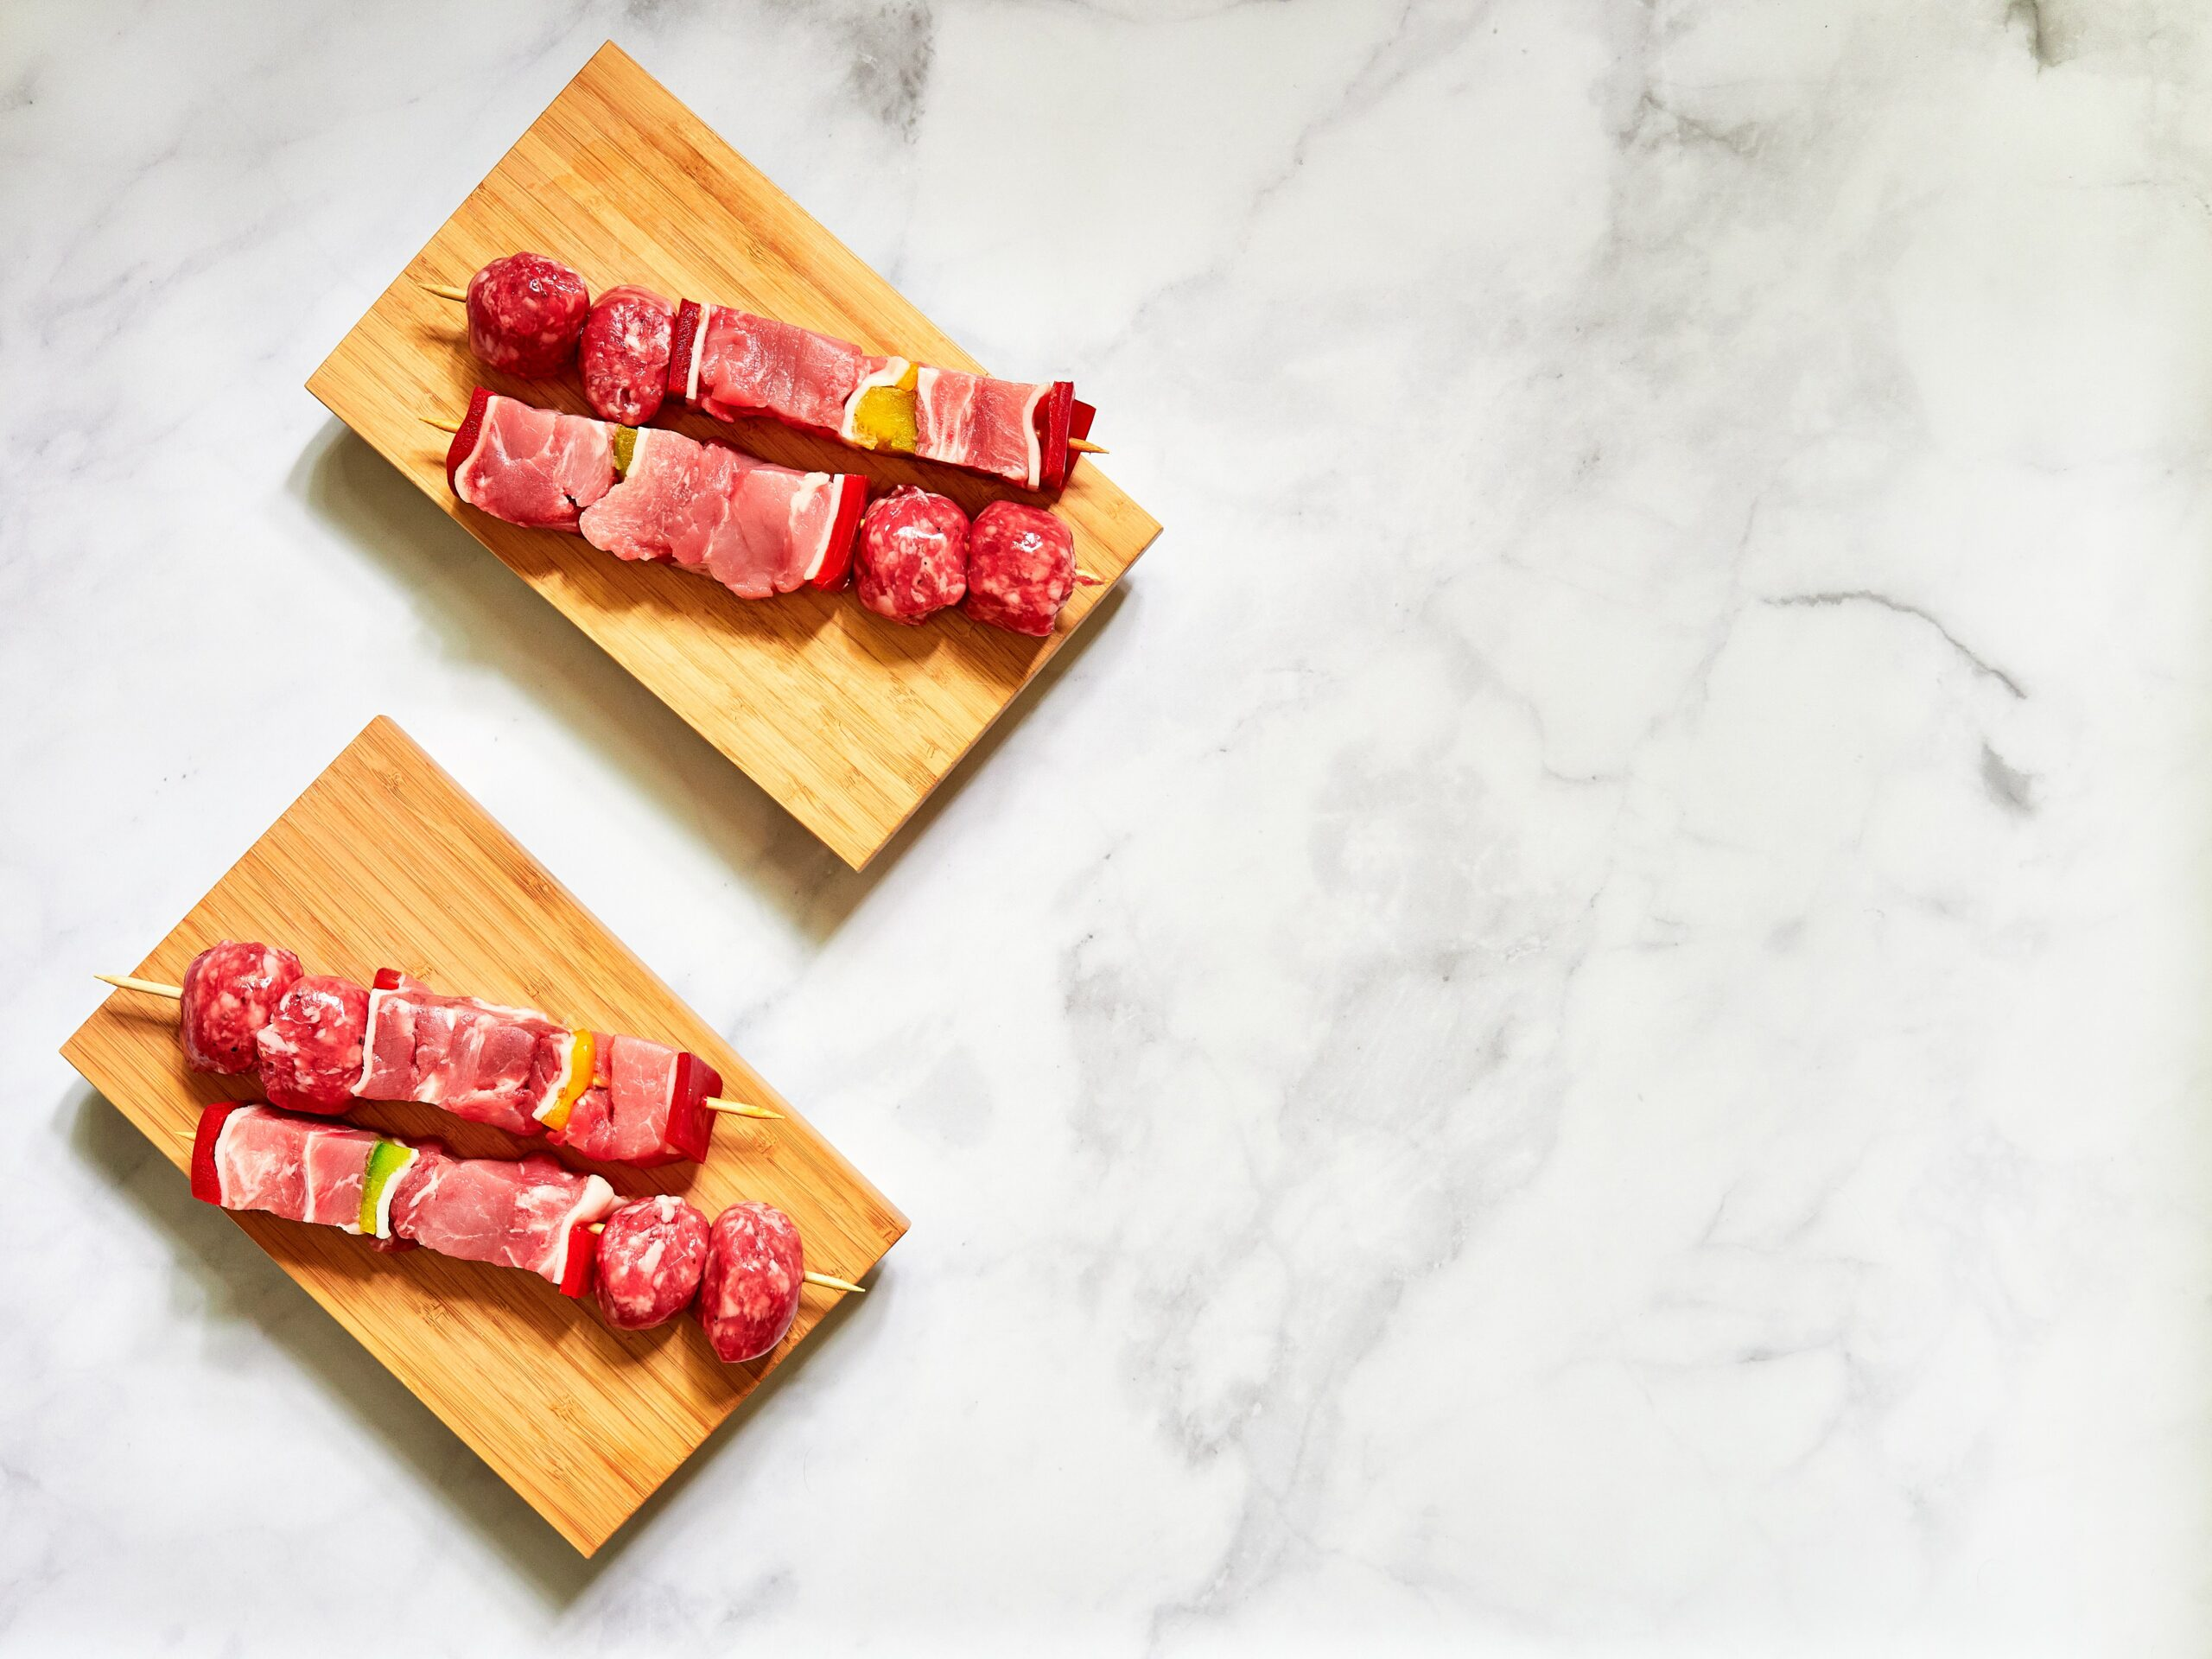 picture of raw meat skewers on board on top of marble slab